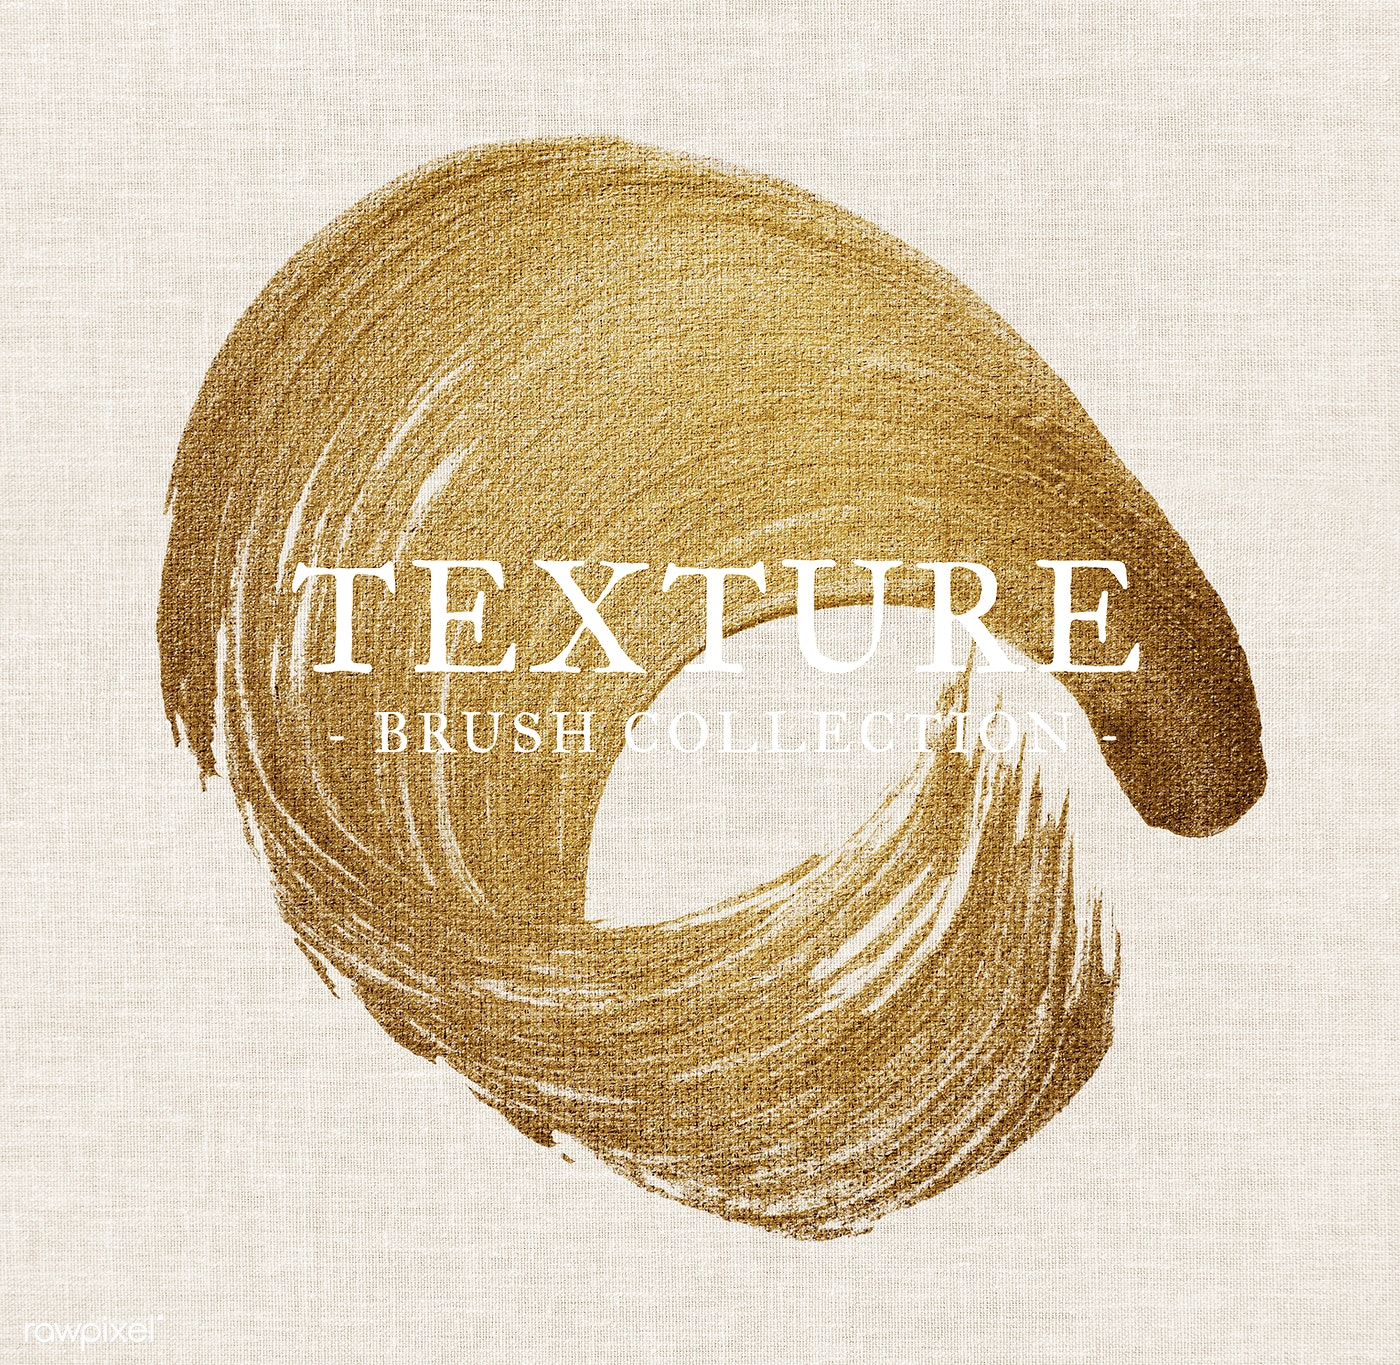 Download premium psd of Gold oil paint brush stroke texture on a colored